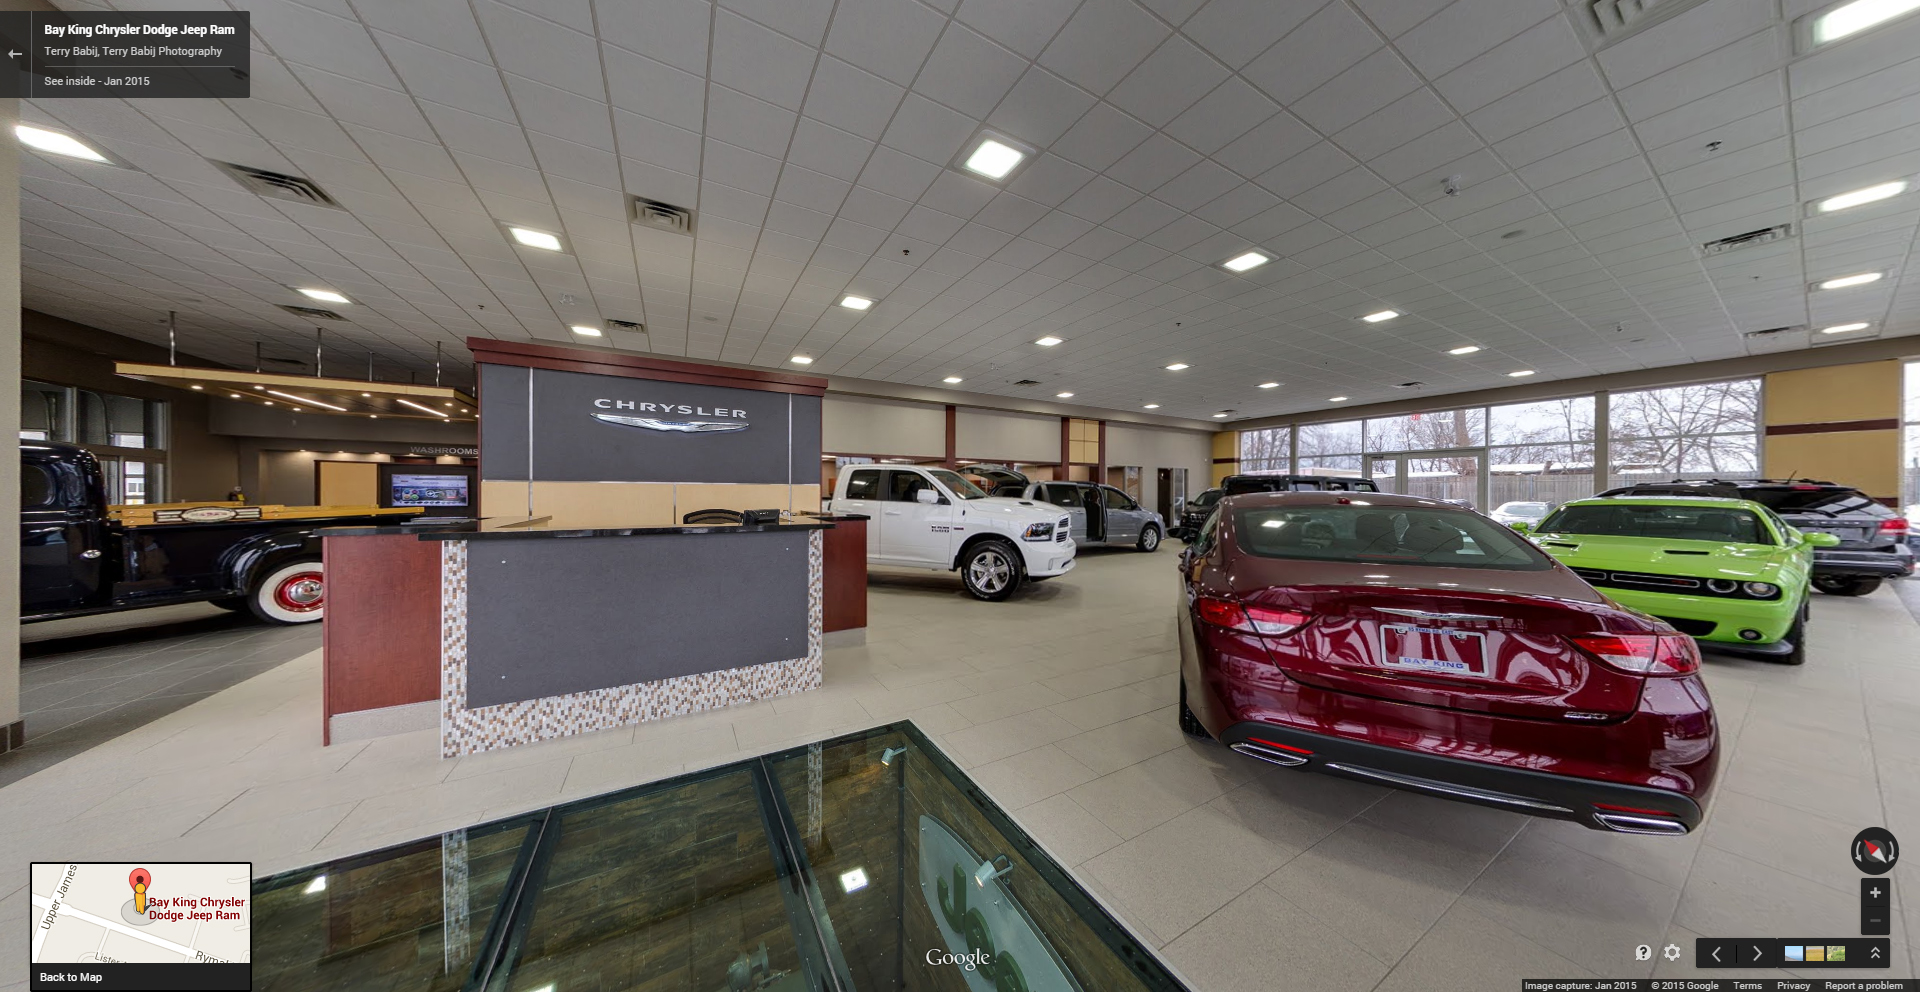 Auto Dealer, Bay King Motors, Google Maps Business View